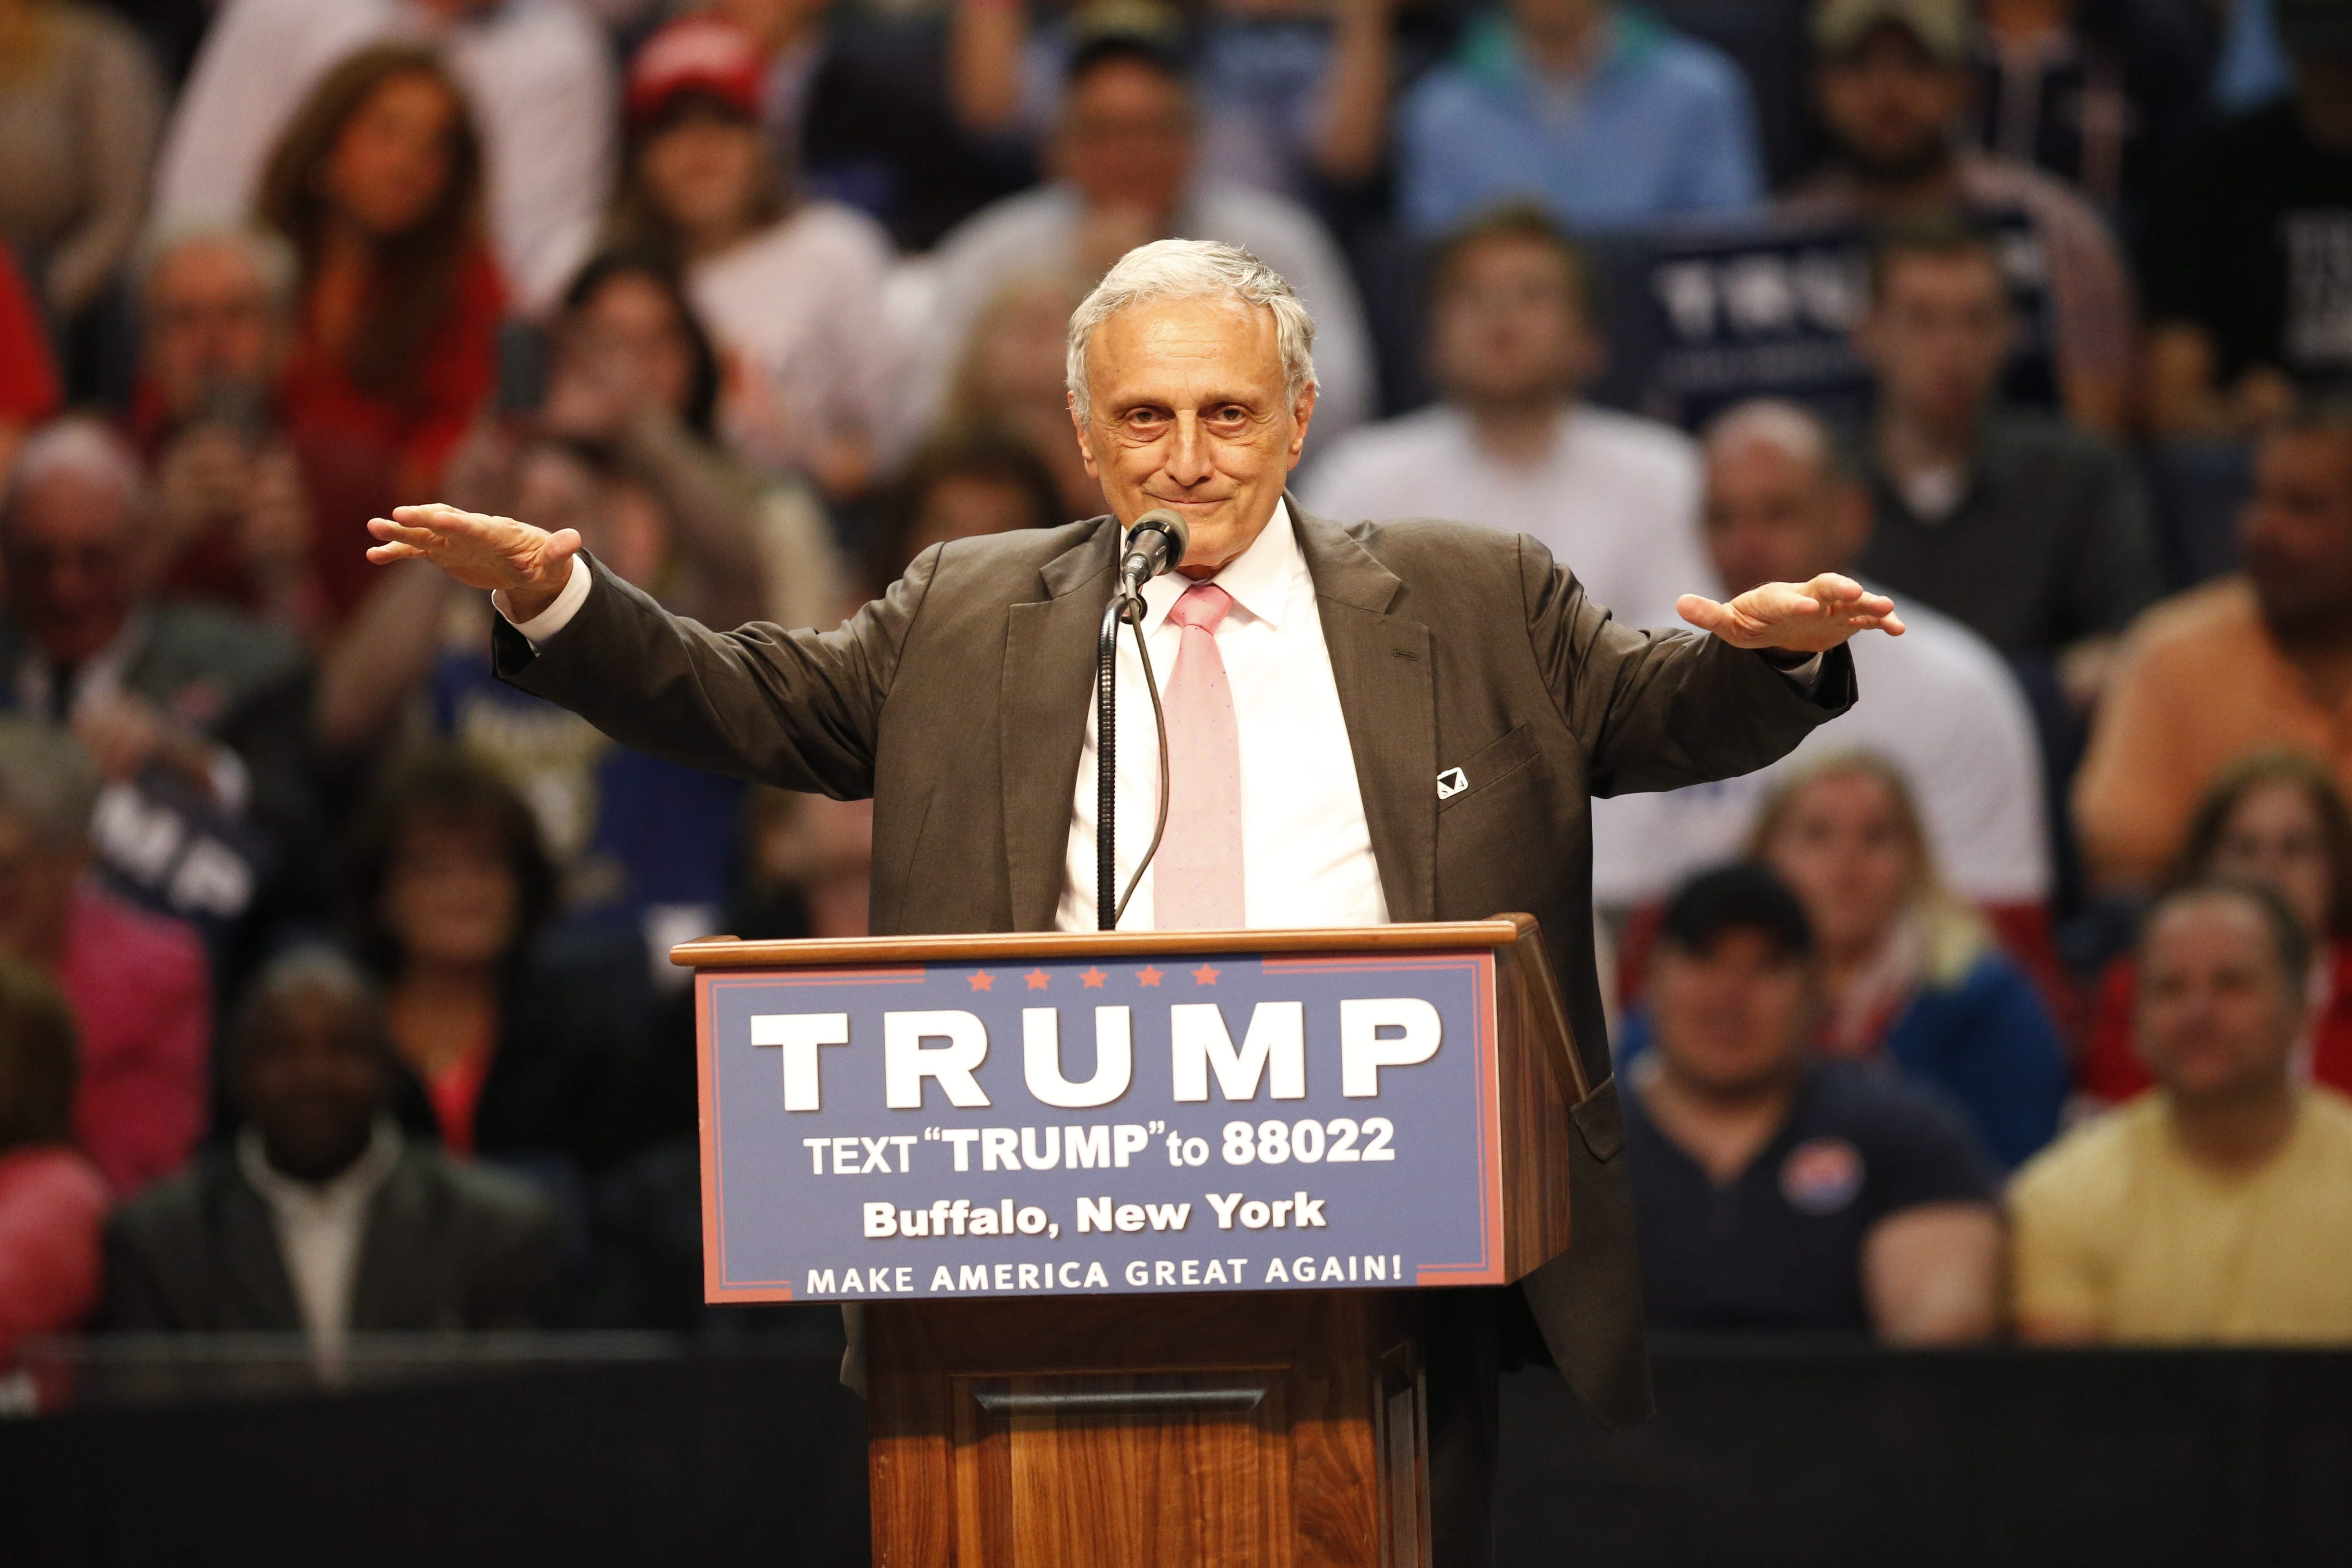 Carl Paladino speaks during the Trump rally at First Niagara Center in Buffalo, N.Y.  Monday, April 18, 2016.  (Derek Gee/Buffalo News)